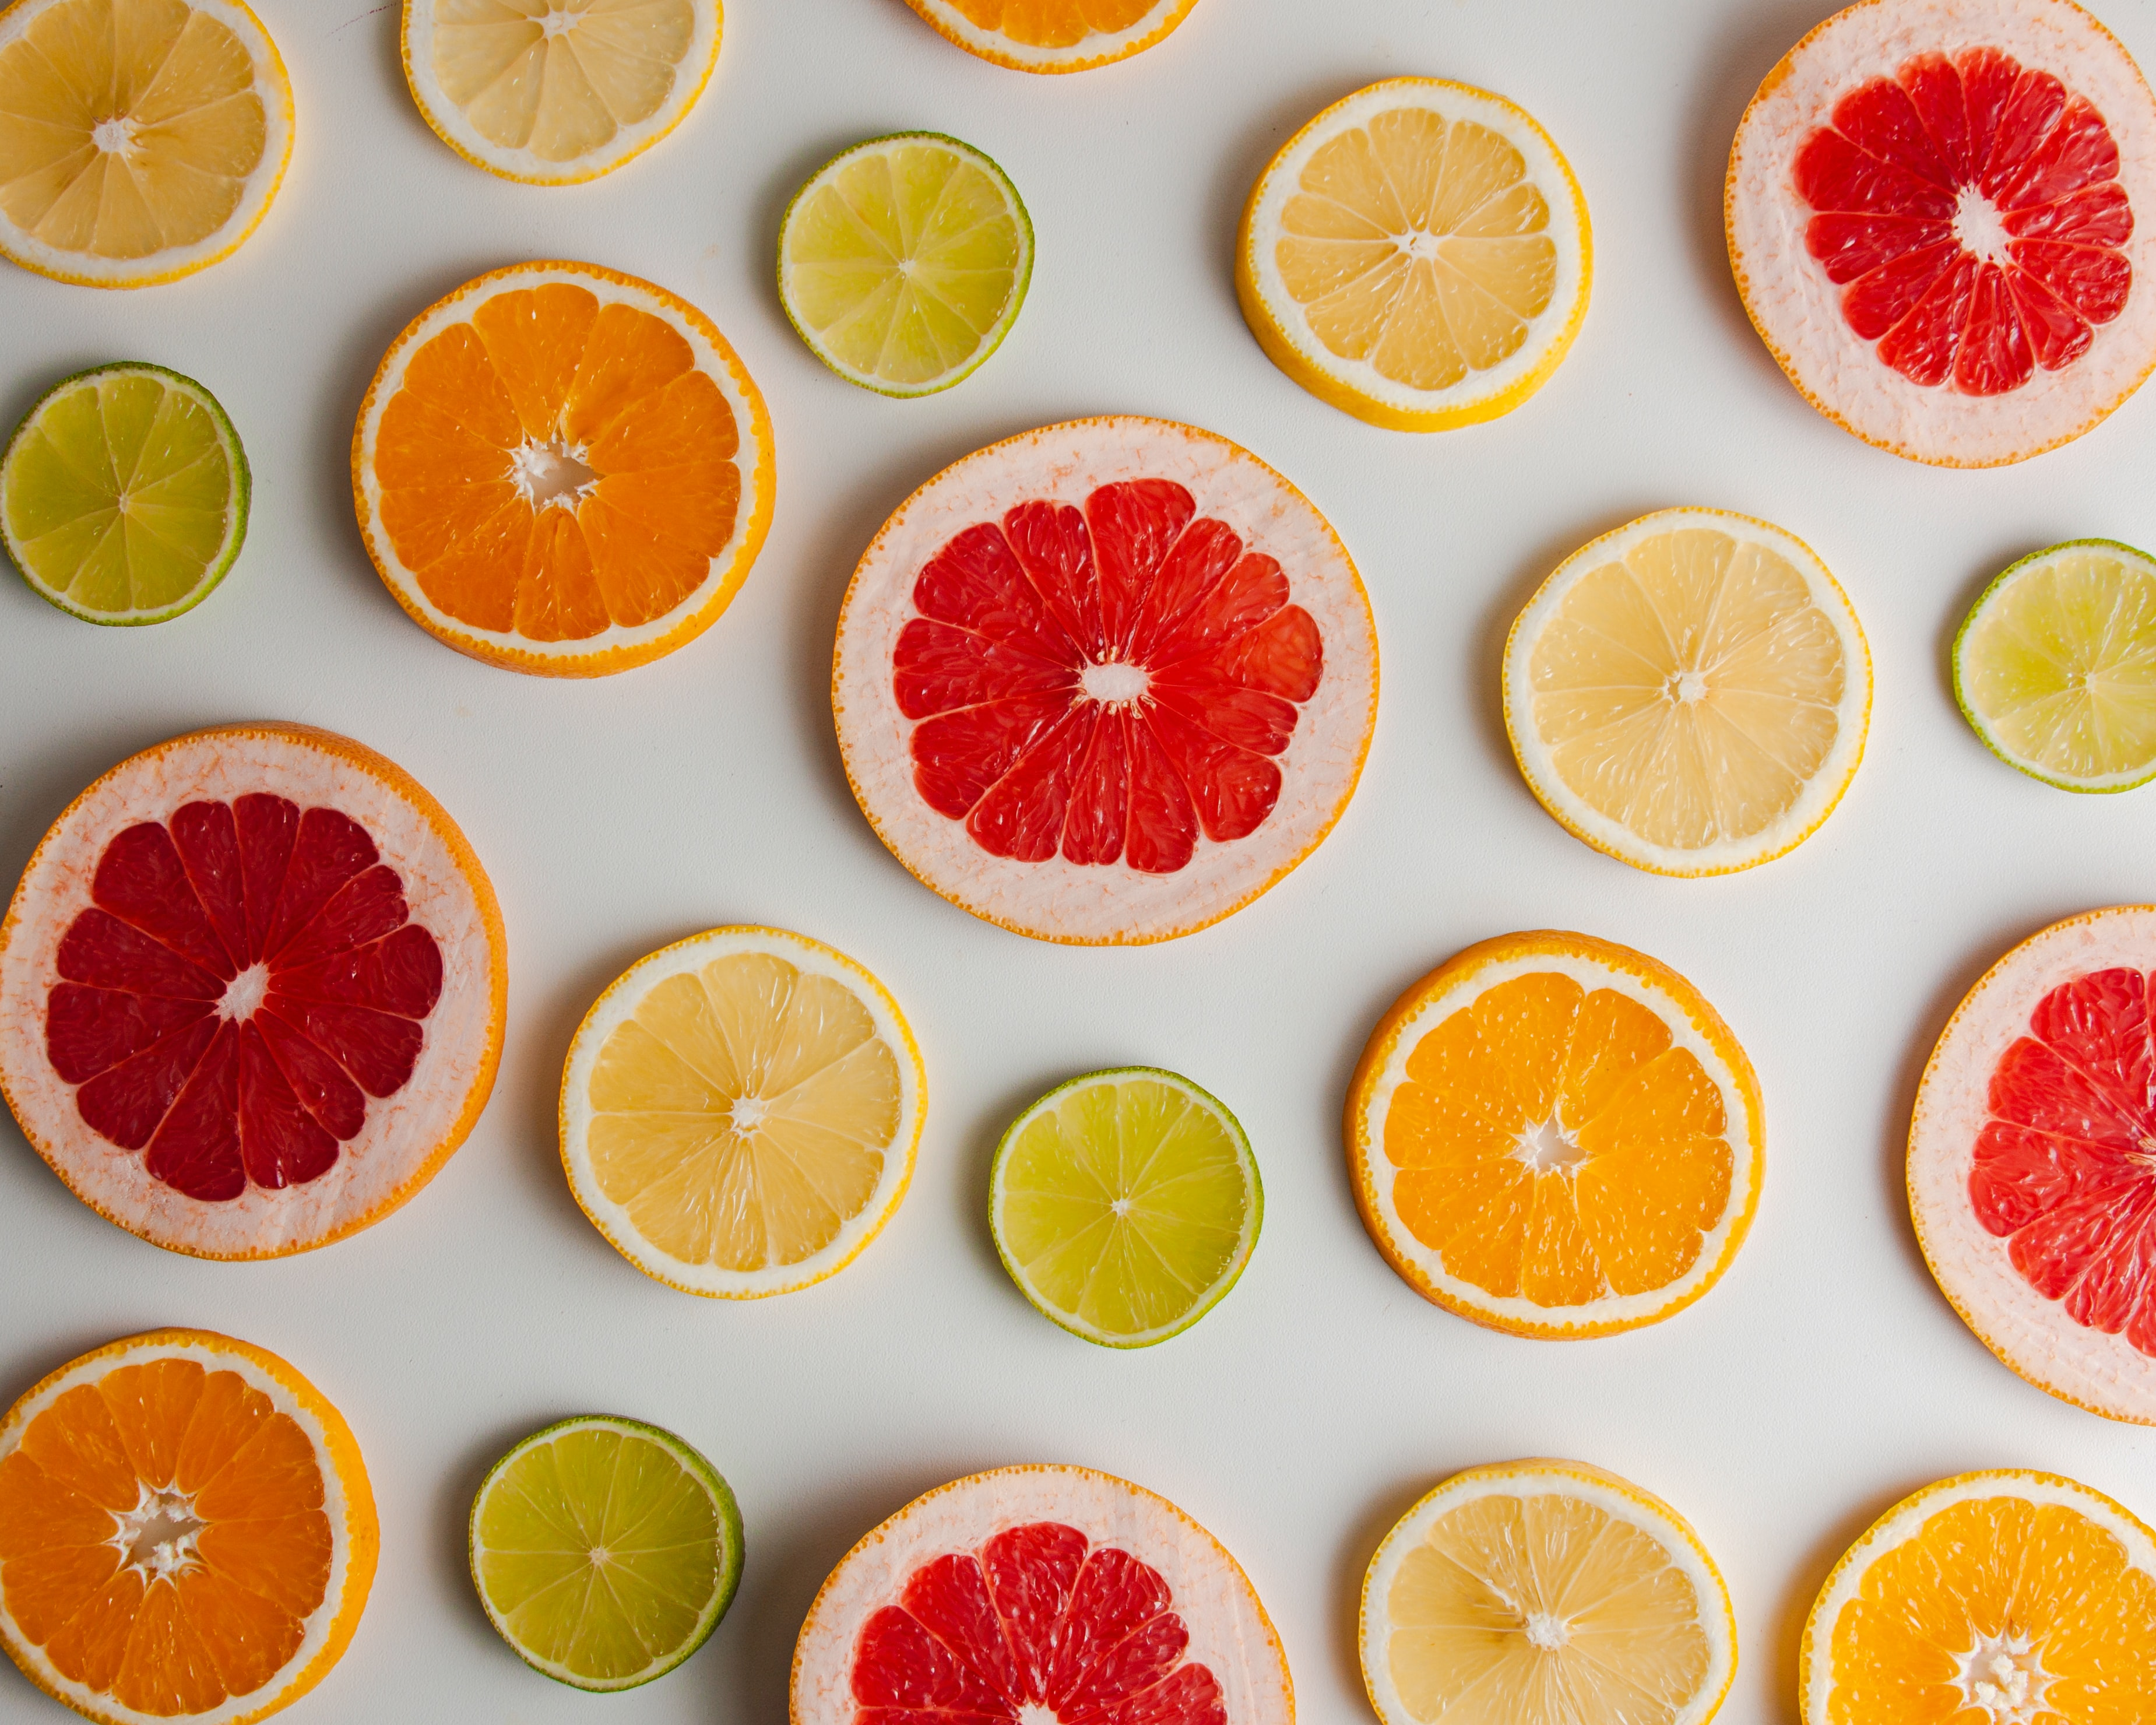 95529 download wallpaper Fruits, Food, Lime, Lemon, Lobules, Slices, Grapefruit screensavers and pictures for free